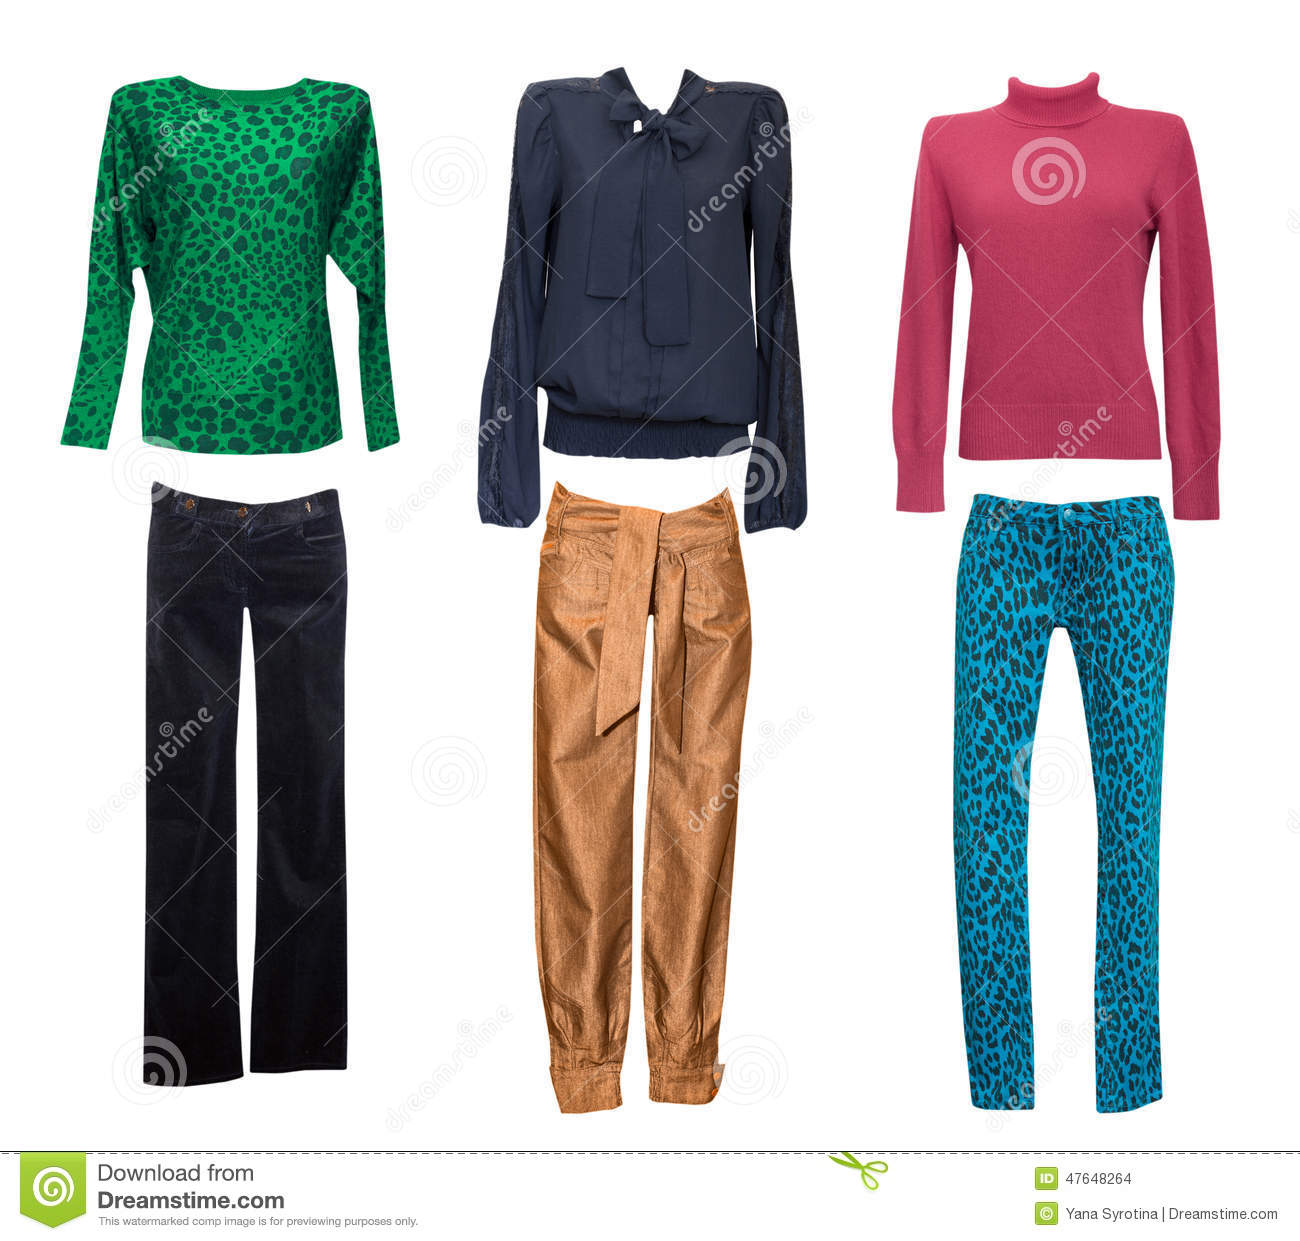 Ropa moda-Find the Best Deals, Coupons, Discounts, and Lowest 10mins.ml Offers· Exclusive Deals· Lowest Prices· Compare PricesService catalog: Lowest Prices, Final Sales, Top Deals.